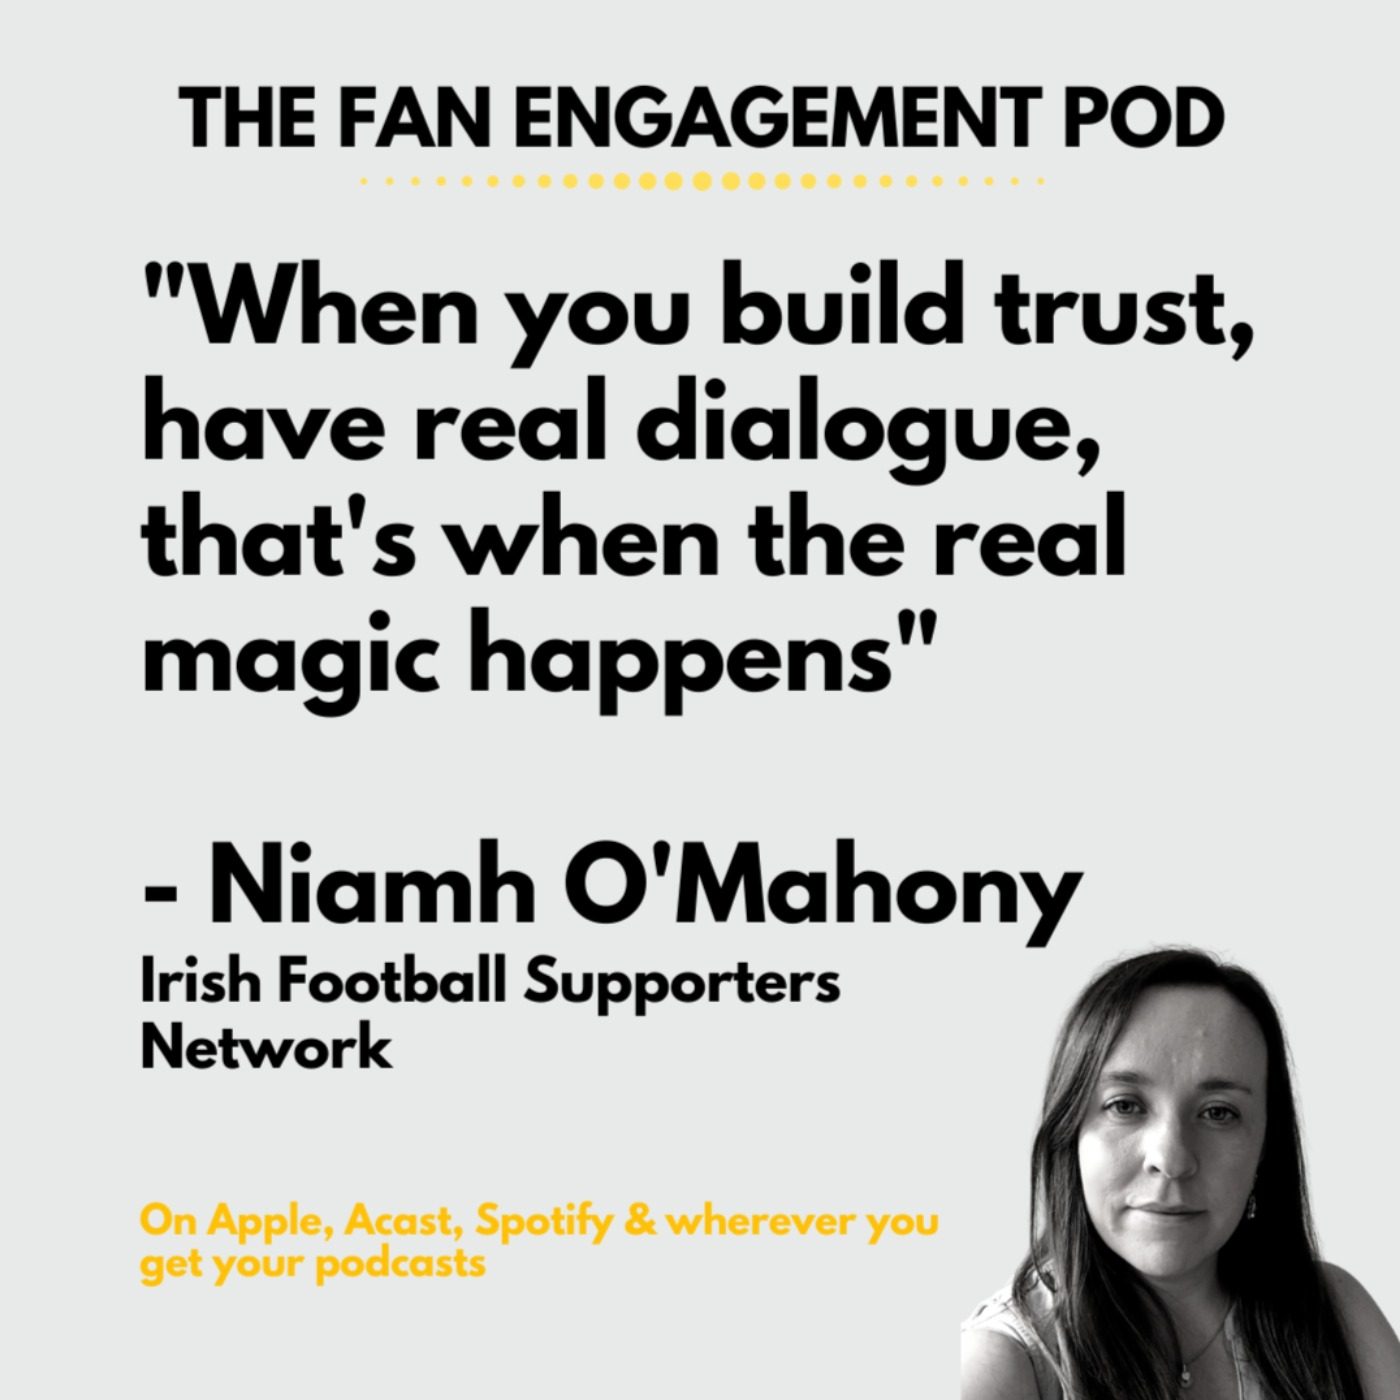 Fan-activism that engages the club with Niamh O'Mahony